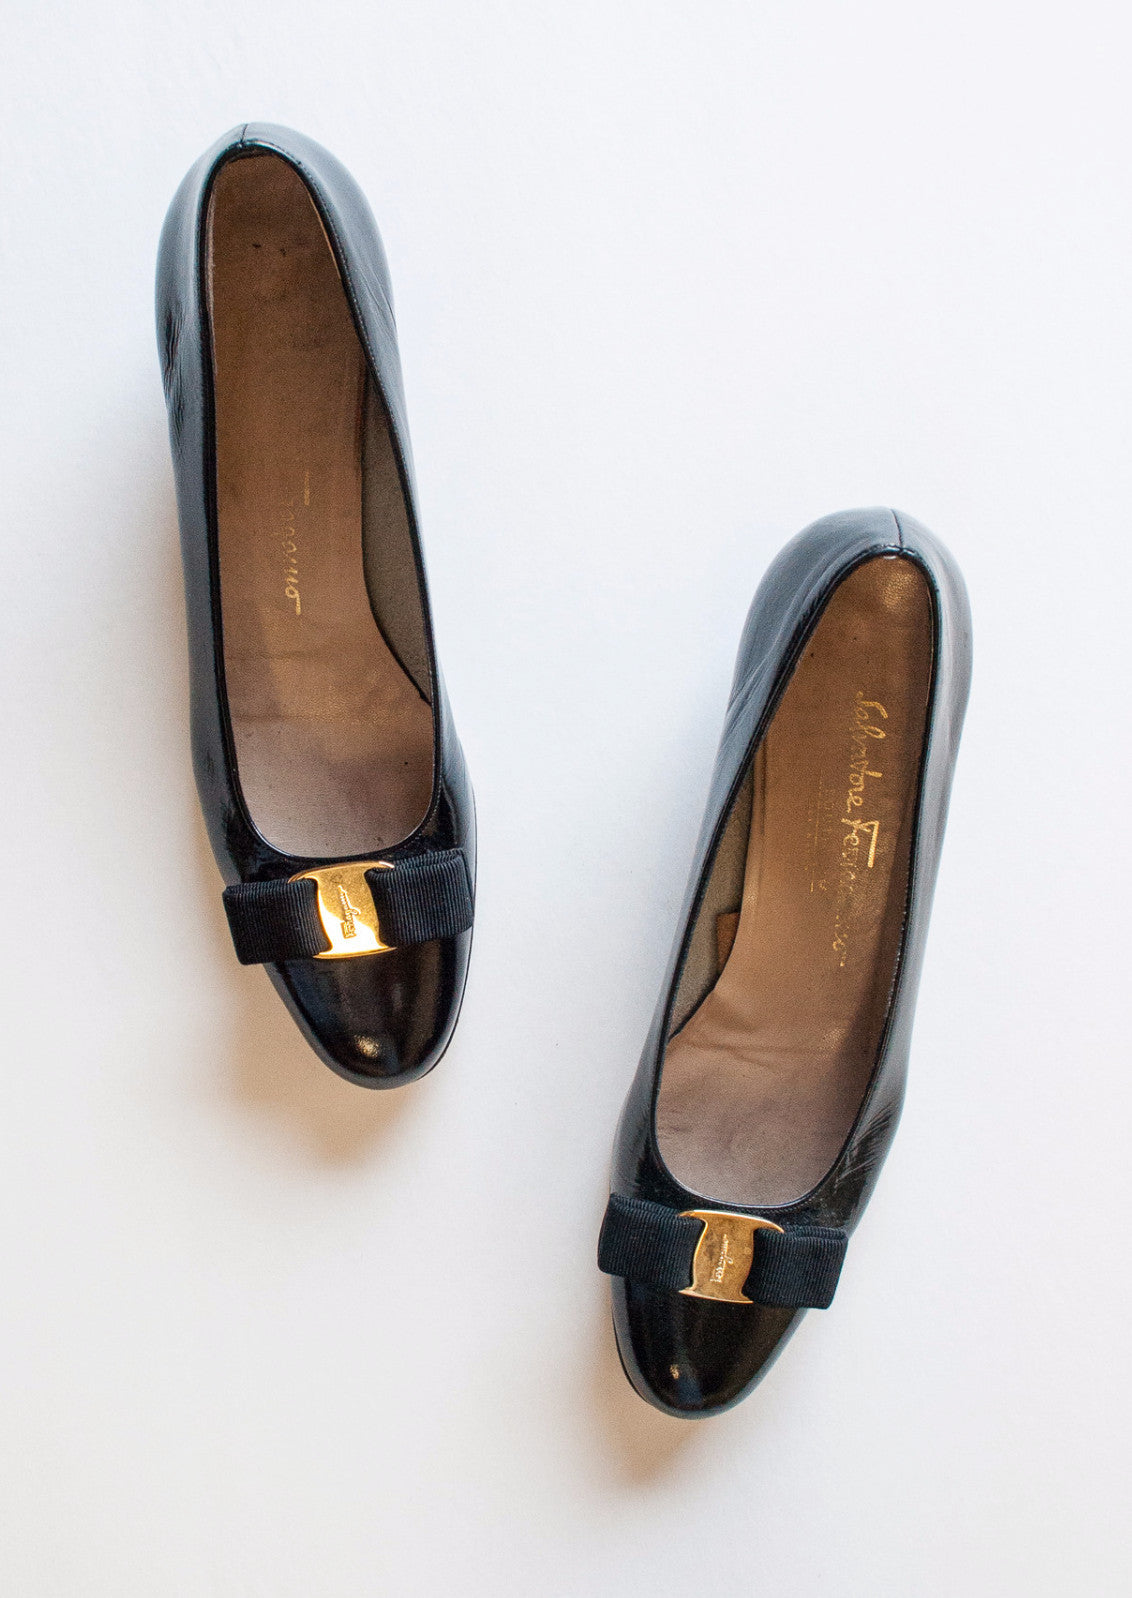 Patent Leather Ferragamo Bow Loafers